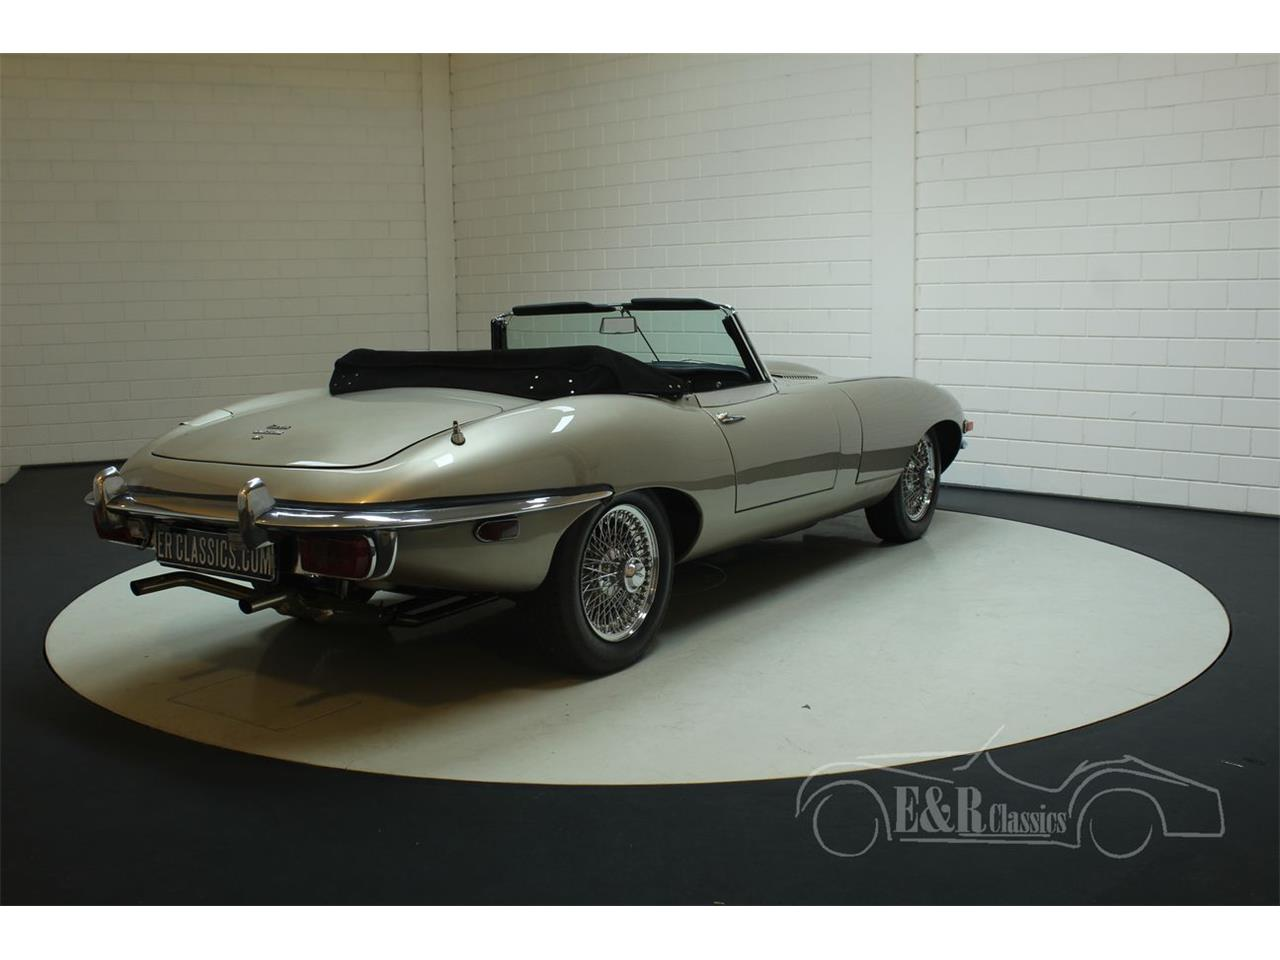 Large Picture of '70 Jaguar E-Type located in Waalwijk - Keine Angabe - - $112,750.00 - PH40